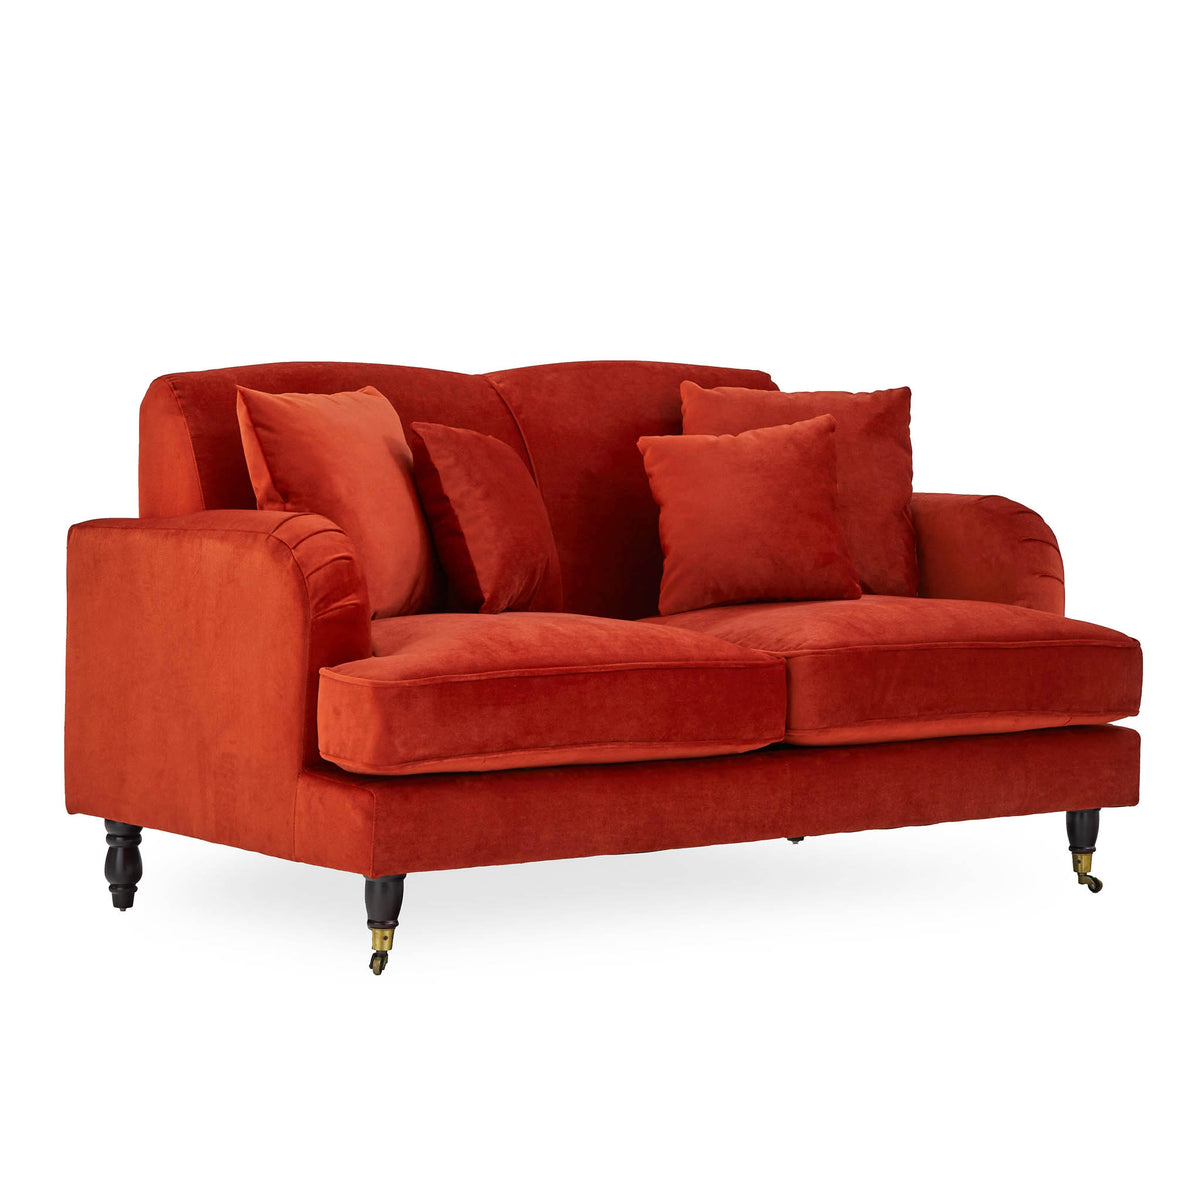 Piper Apricot 2 Seater Settee from Roseland Furniture